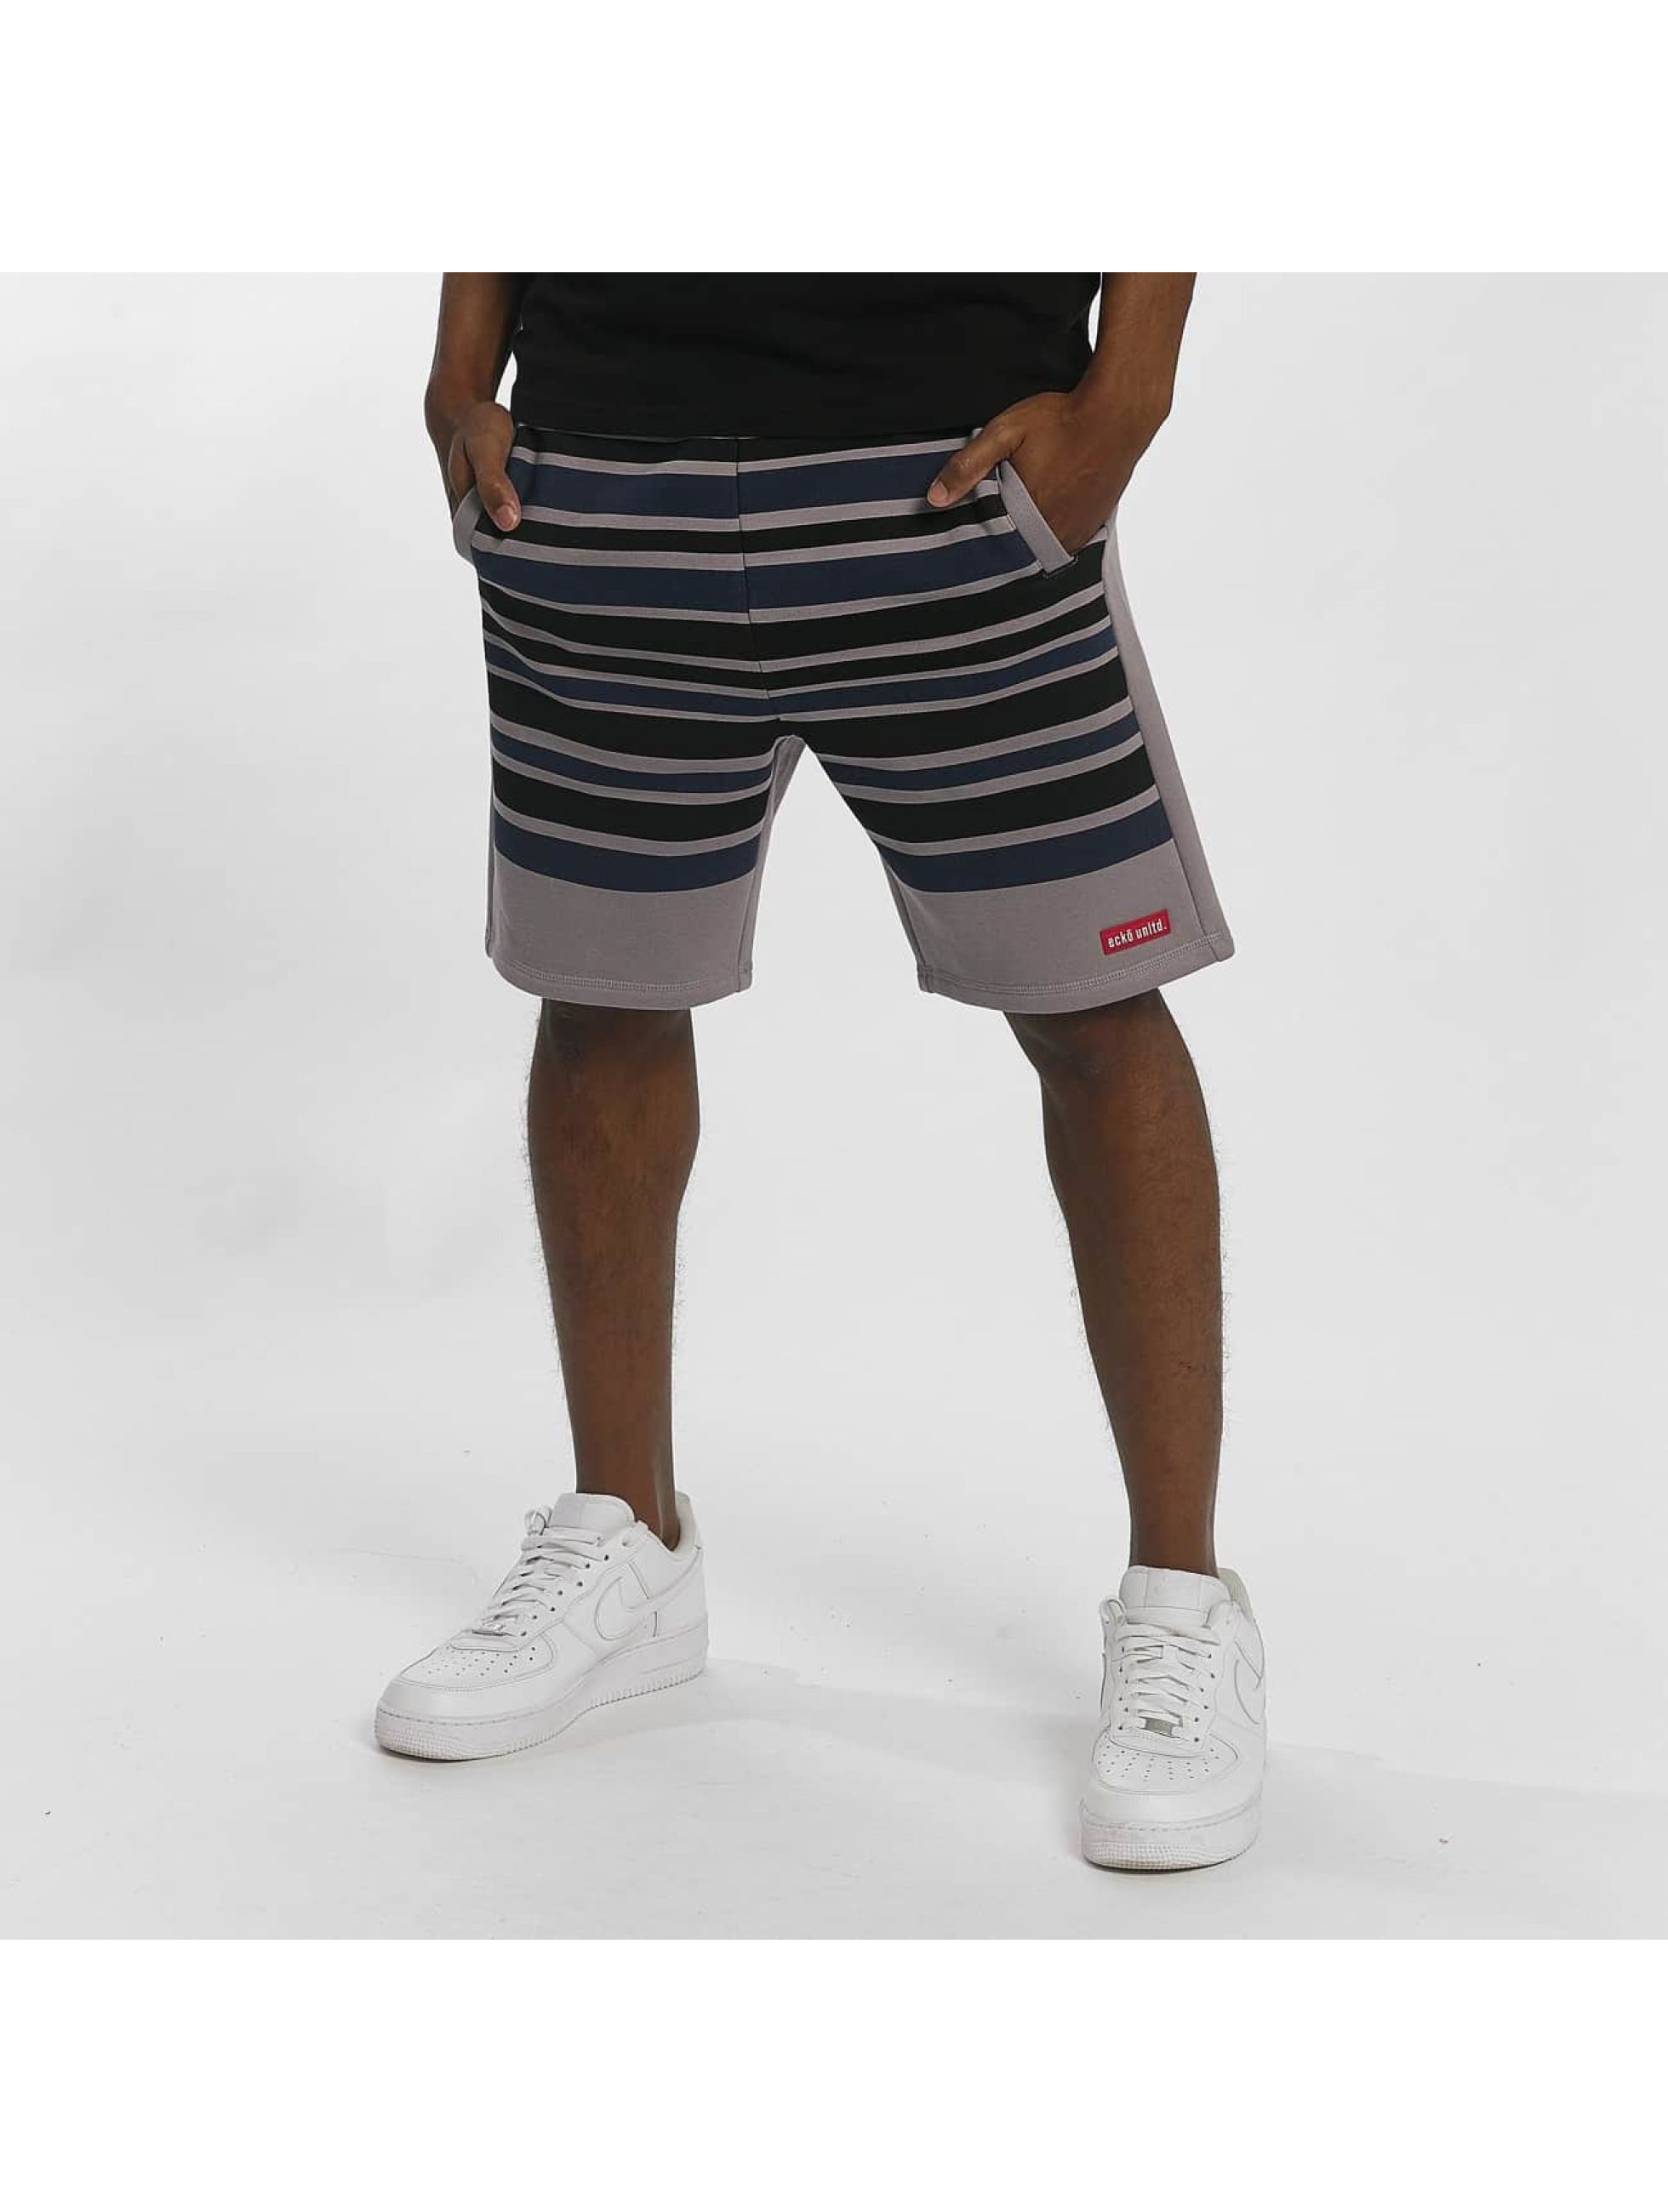 Ecko Unltd. / Short MafiaIsland in grey S